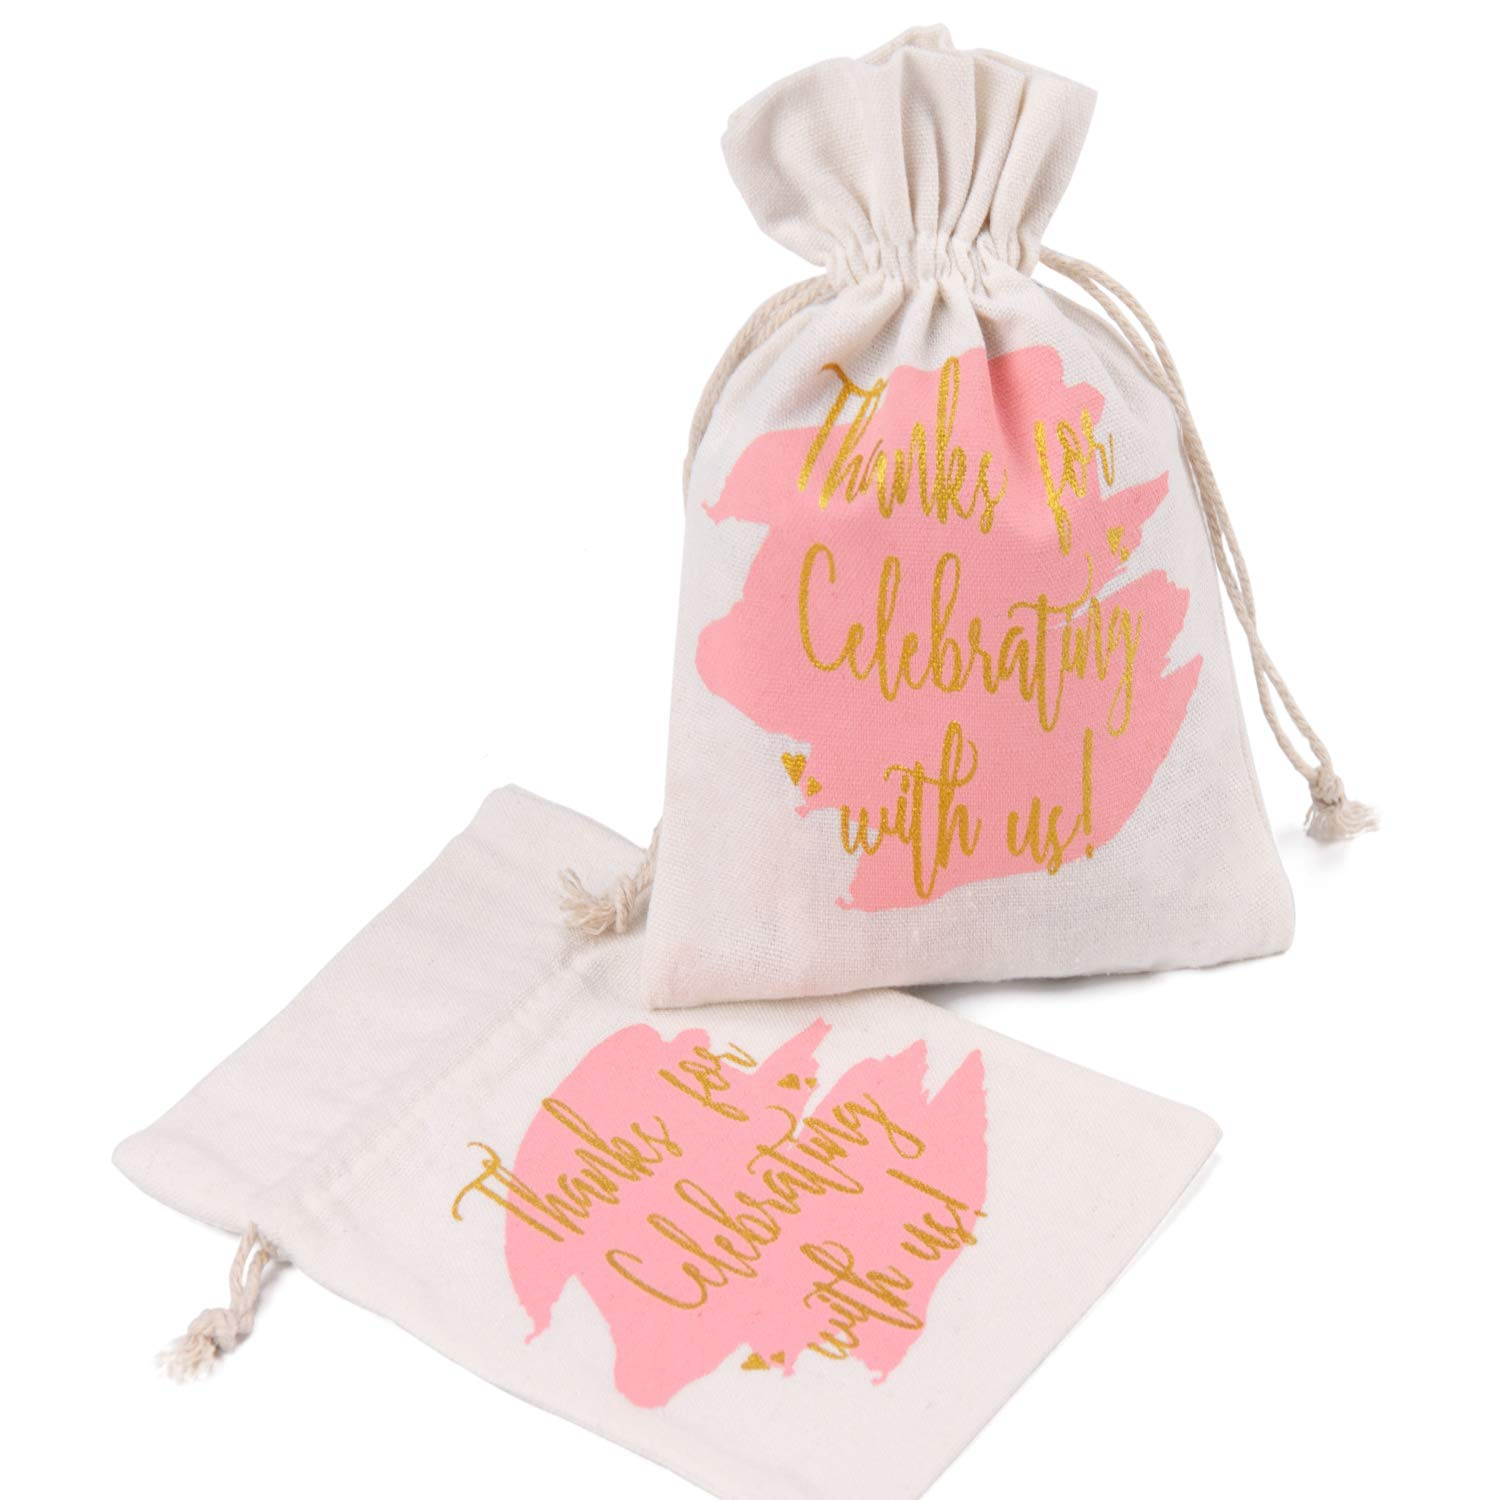 """WRAPAHOLIC 5x7 inch 10 pcs Burlap Drawstring Gift Bags - Pink Watercolor with Gold""""Thanks for Celebrating with us"""" Printed for Wedding Party Welcome Favor Bags"""